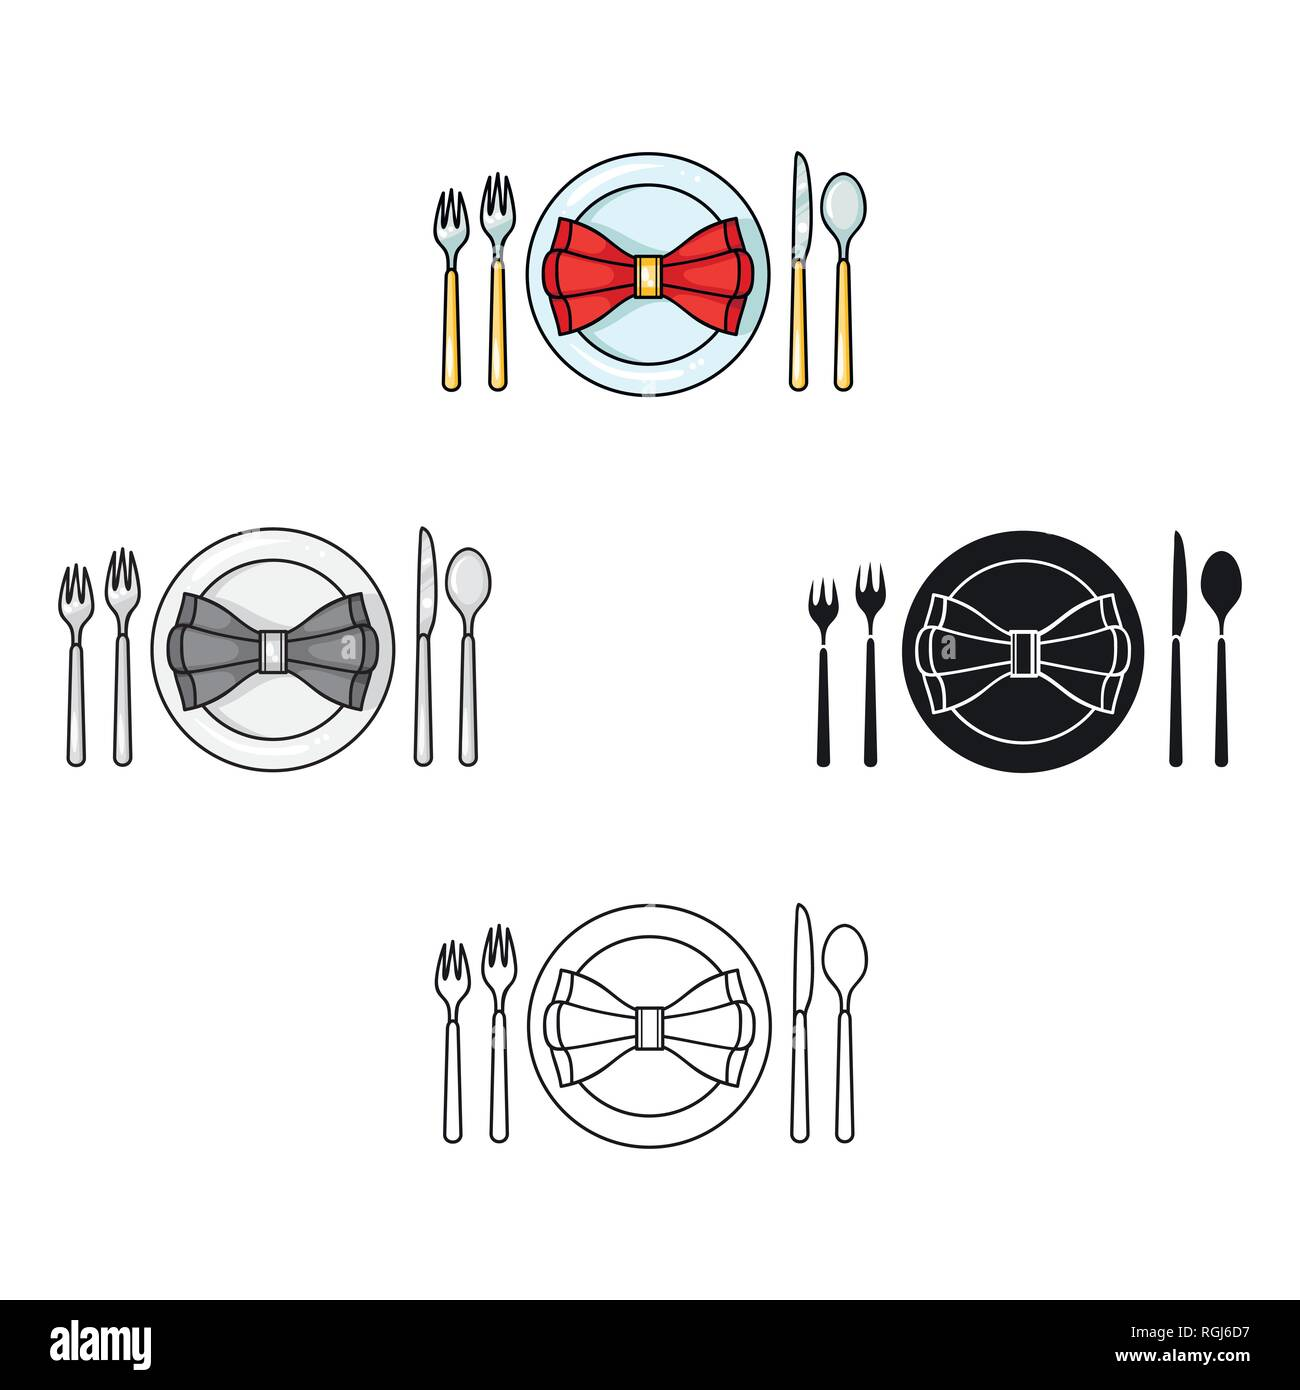 Restaurant Table Cartoonting Icon In Cartoon Style Isolated